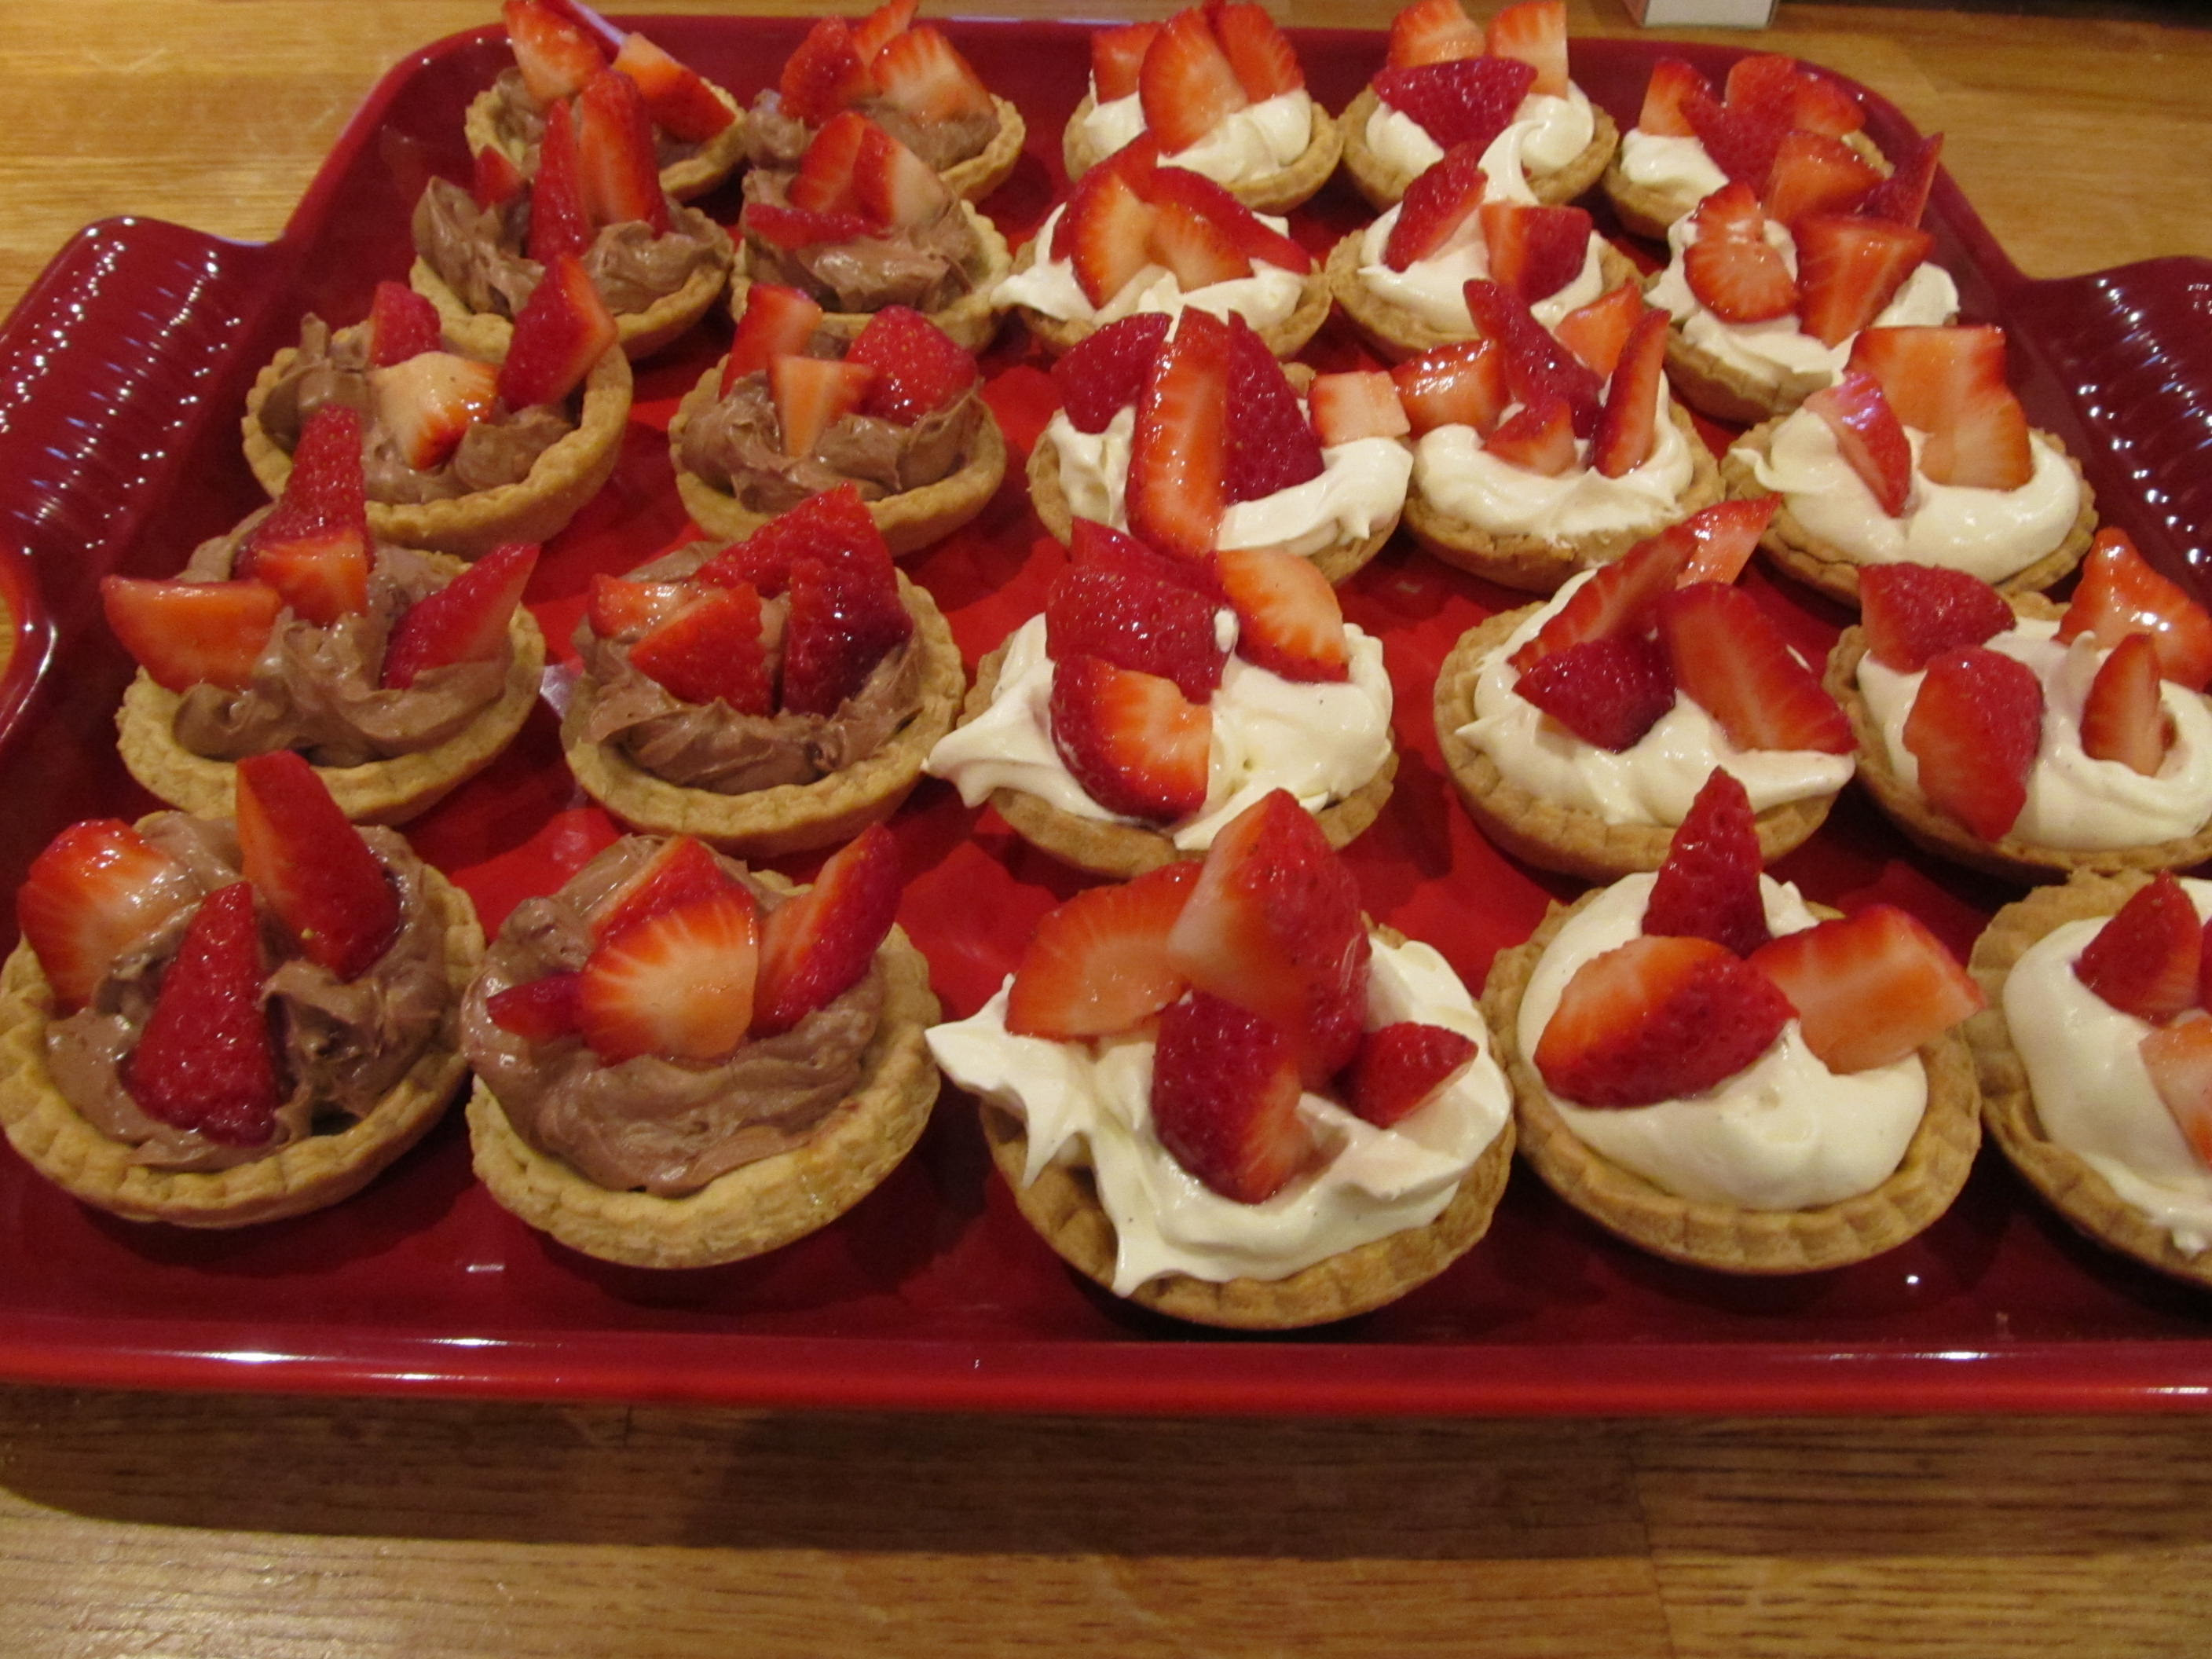 Canape L Sweet Strawberry Canapés | Reflections Of A Foodie